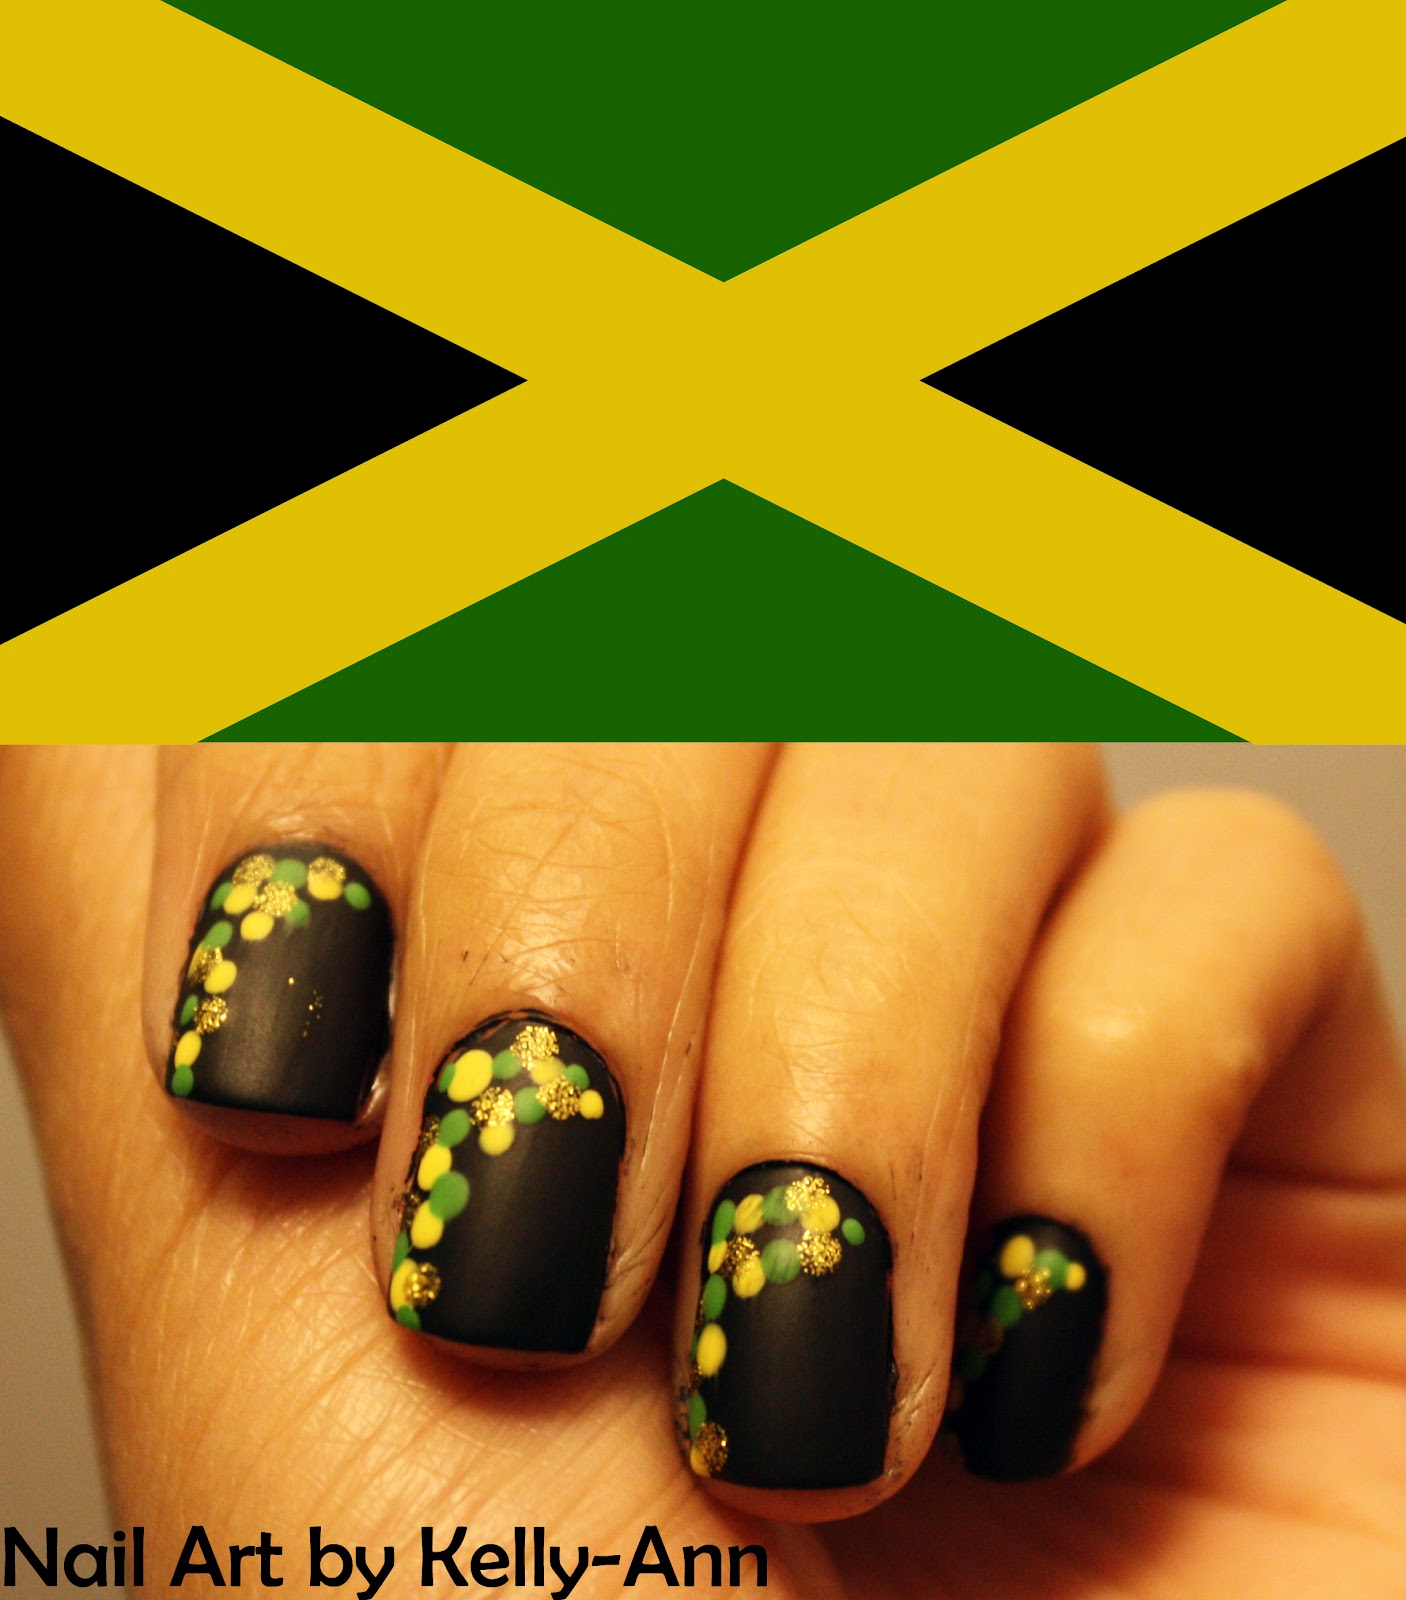 Nail Art Designs From Jamaica